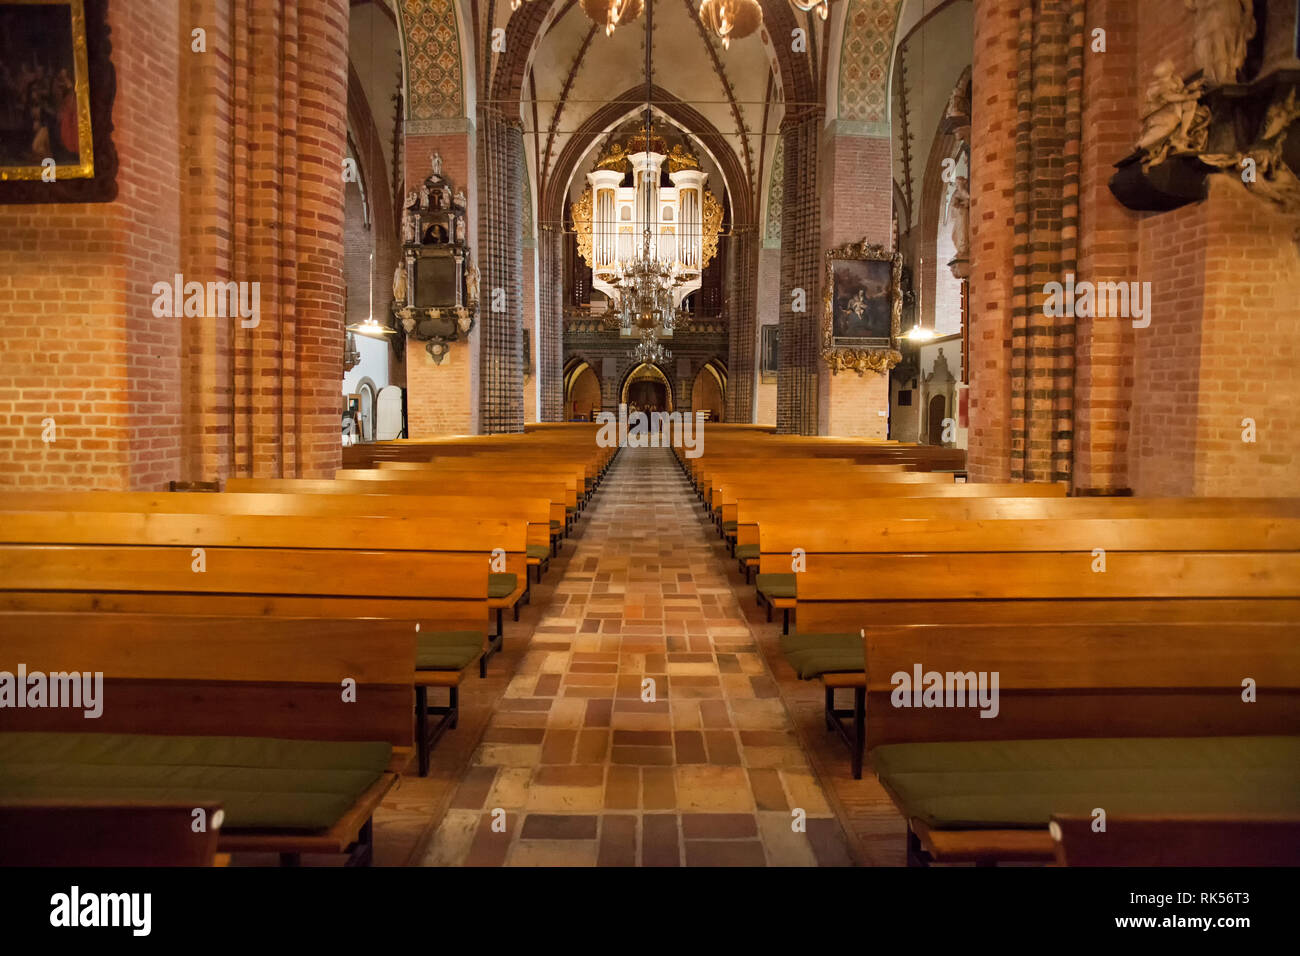 The organ of the Schleswig Cathedral, Schleswig, Schleswig-Holstein, Germany, Europe - Stock Image